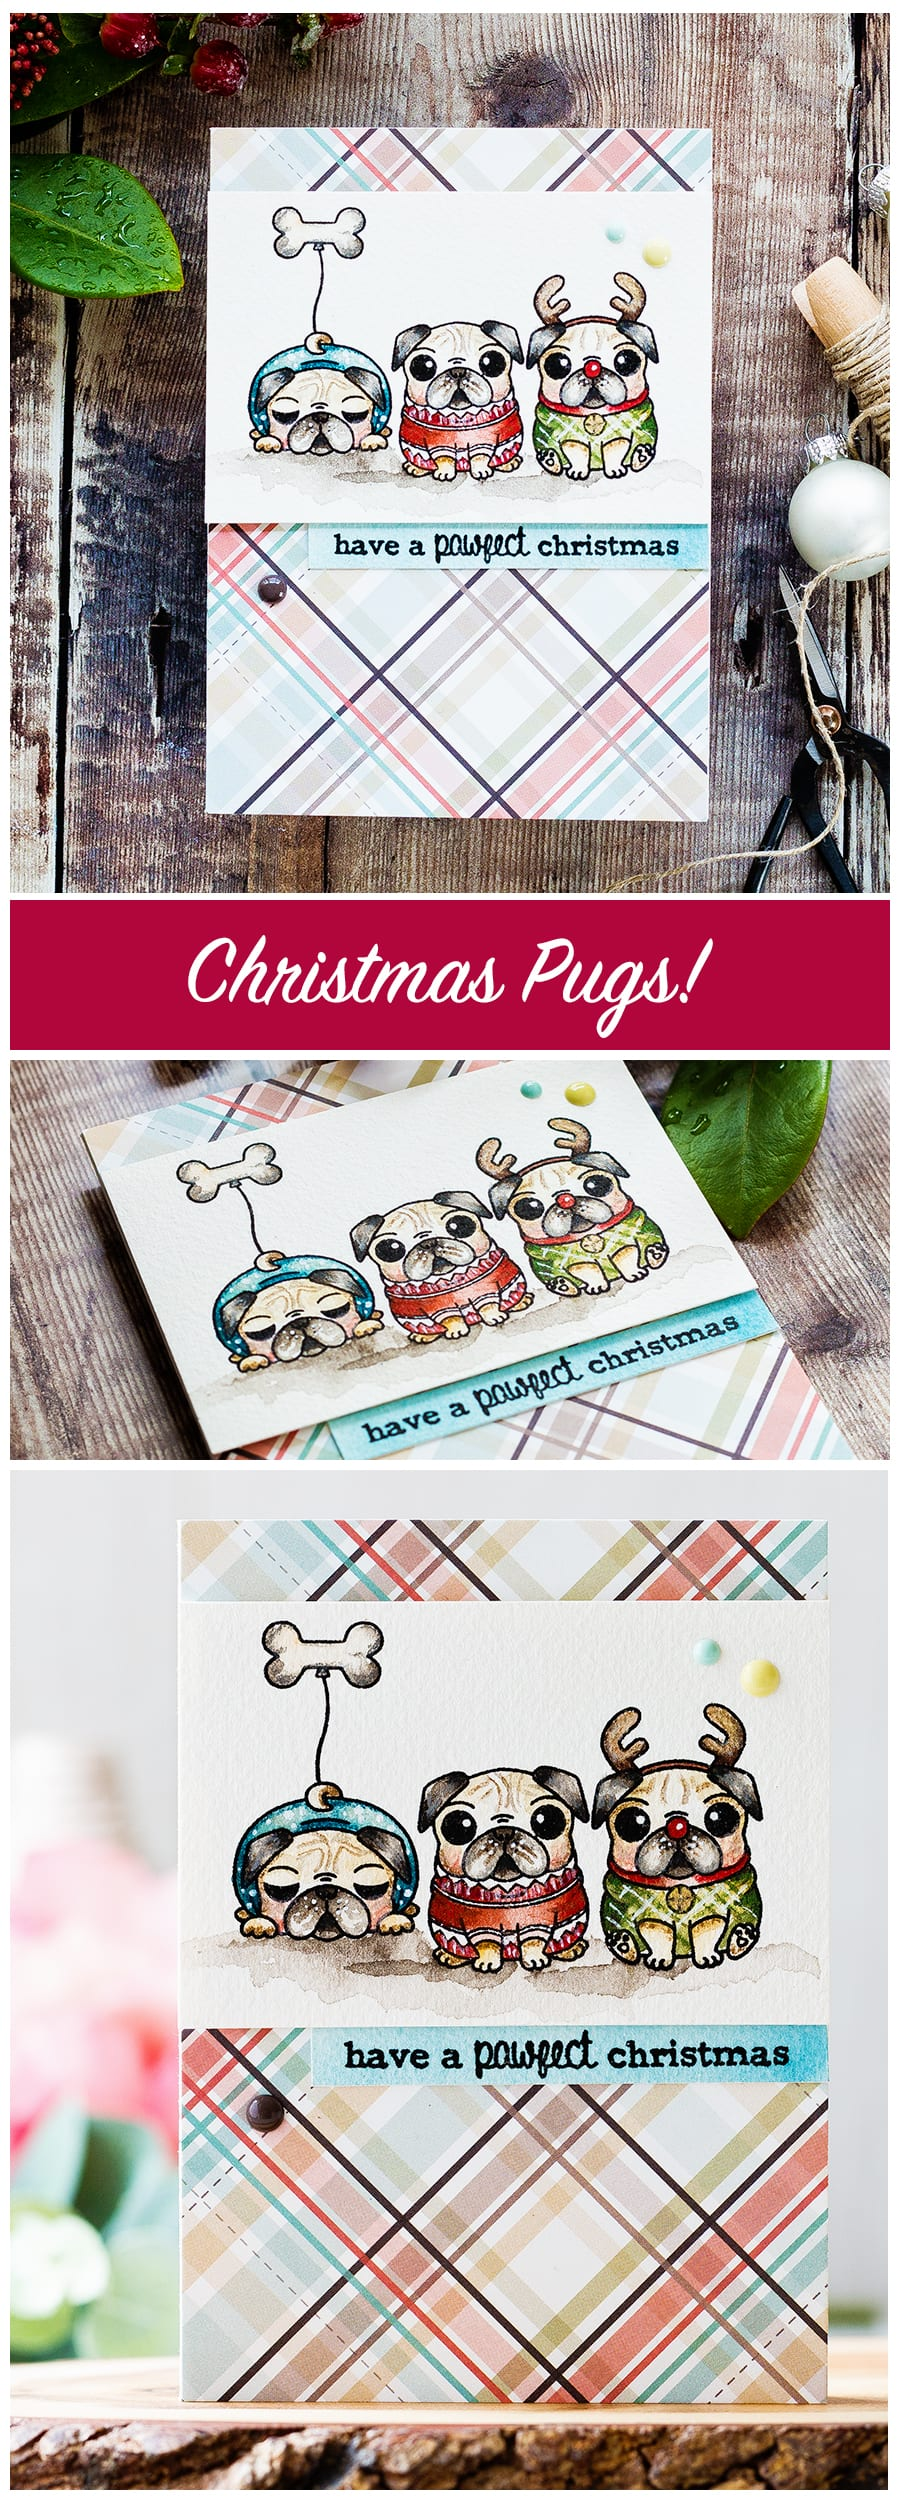 Watercolored cute pug dog Christmas card by Debby Hughes. Find out more about this Christmas card by clicking on the following link: https://limedoodledesign.com/2016/12/advent-calendar-extravaganza-with-taheerah-atchia/